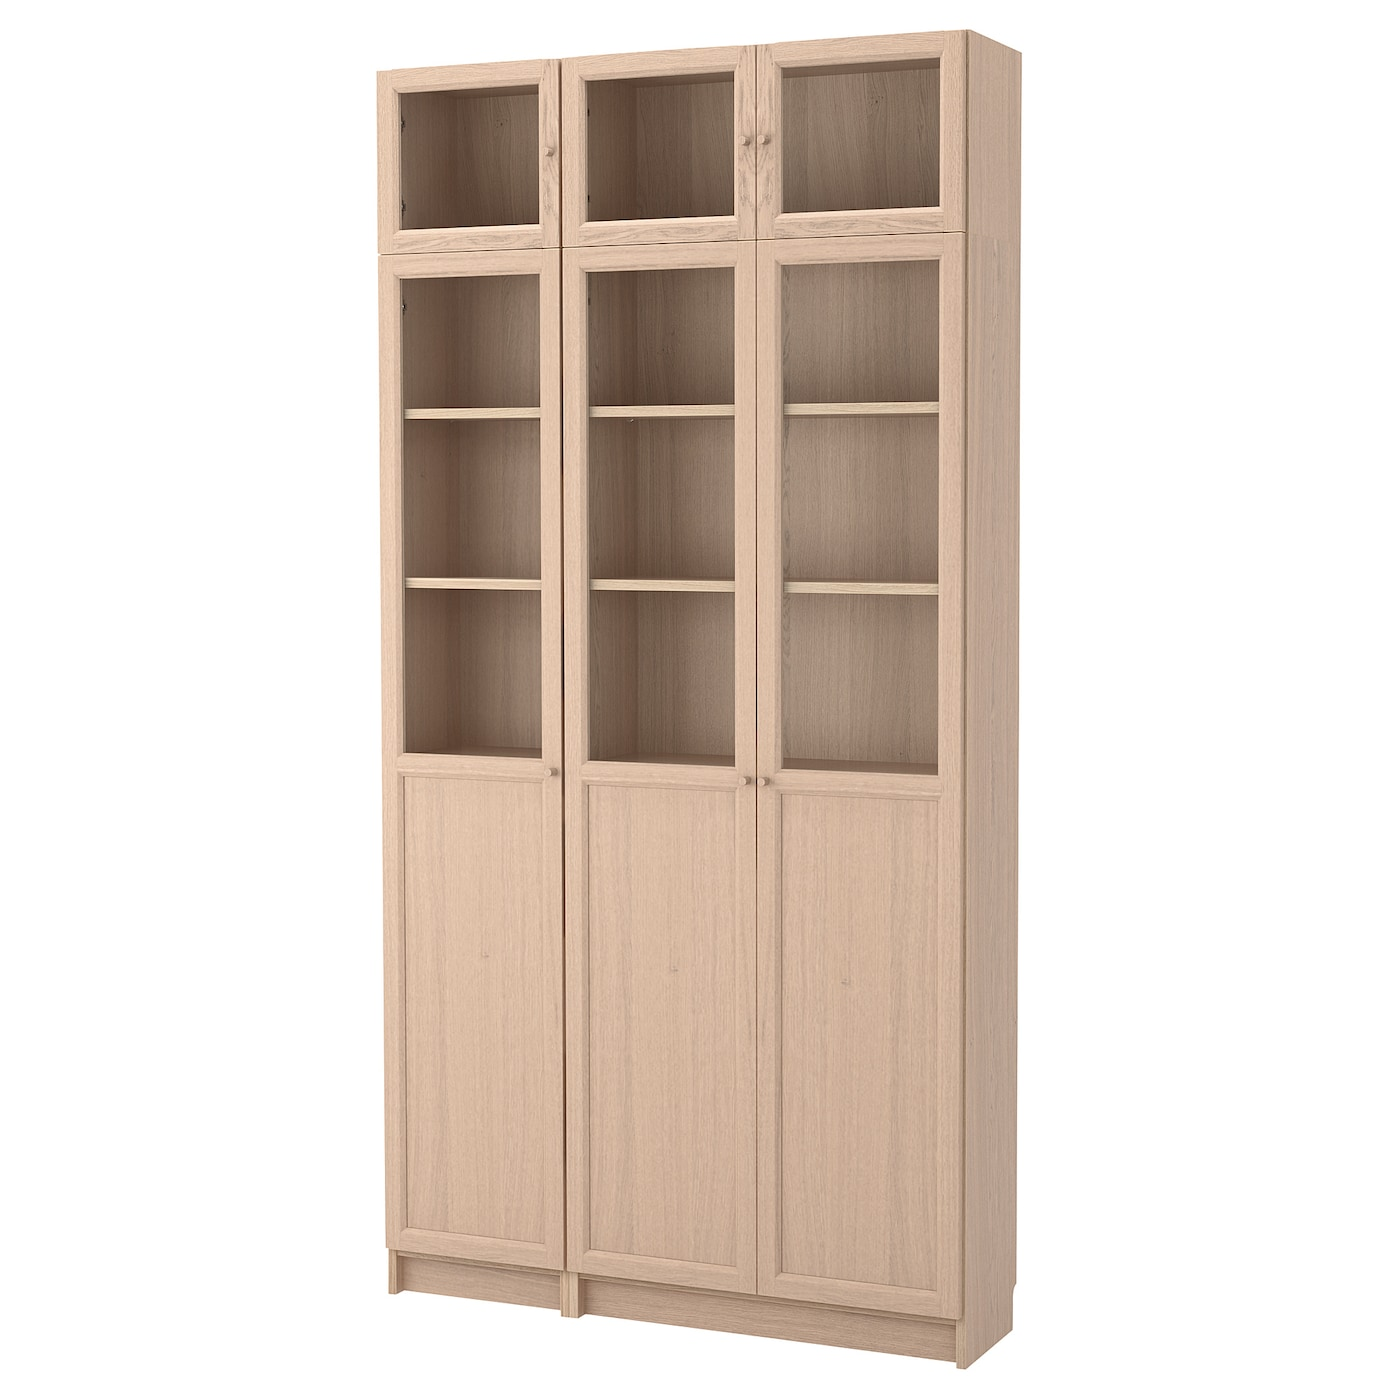 doors glass bookcase in amazon dp dining storage kitchen high com with